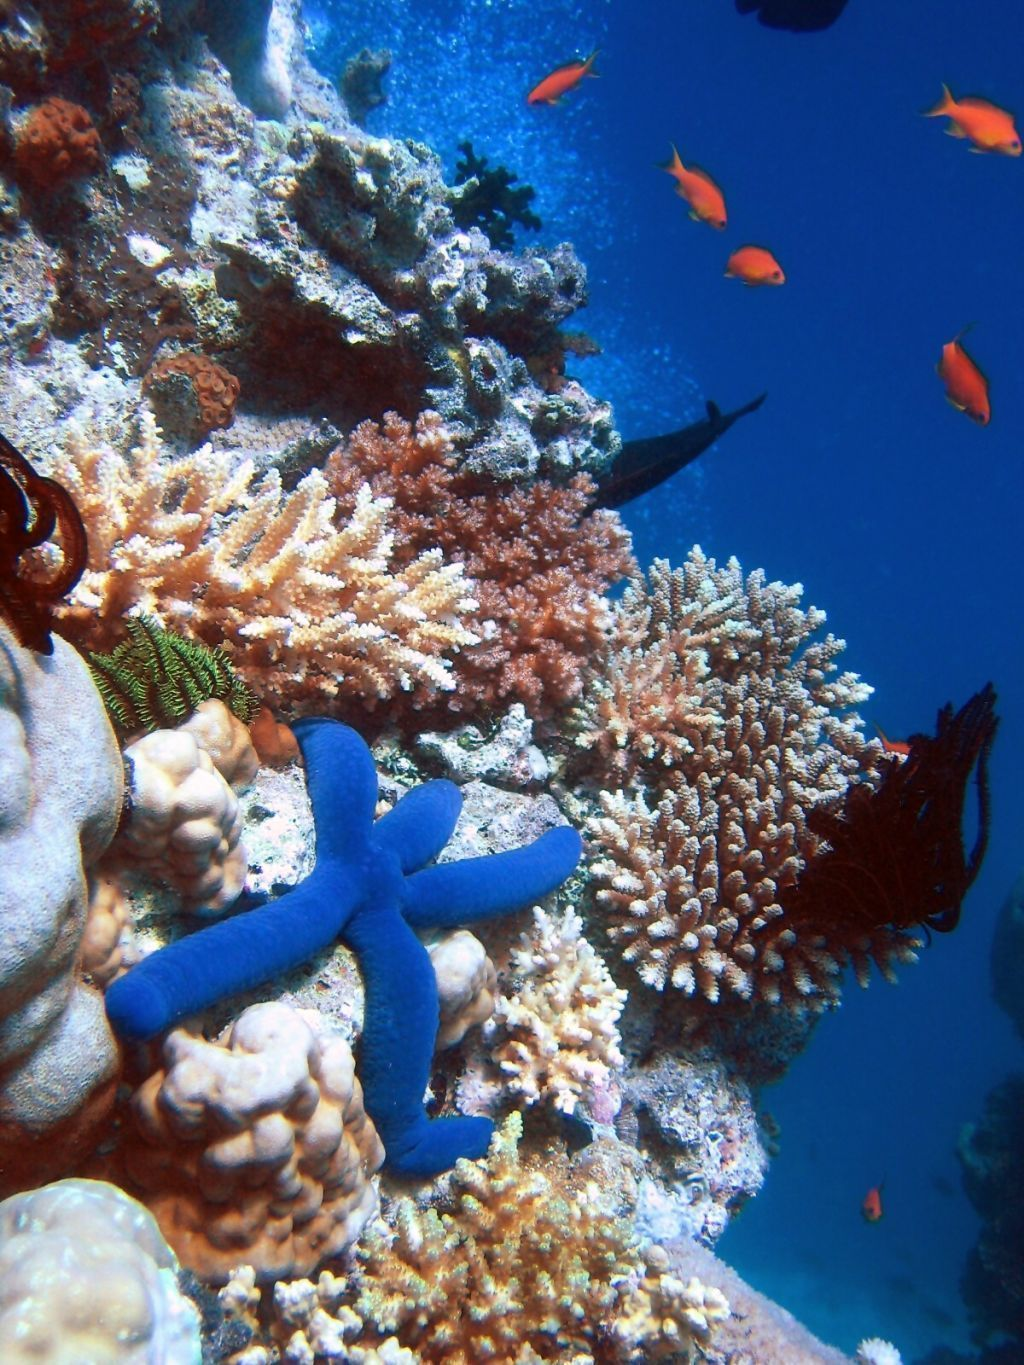 marketing case study blue dolphin restaurant writework english a blue starfish linckia laevigata resting on hard acropora coral lighthouse